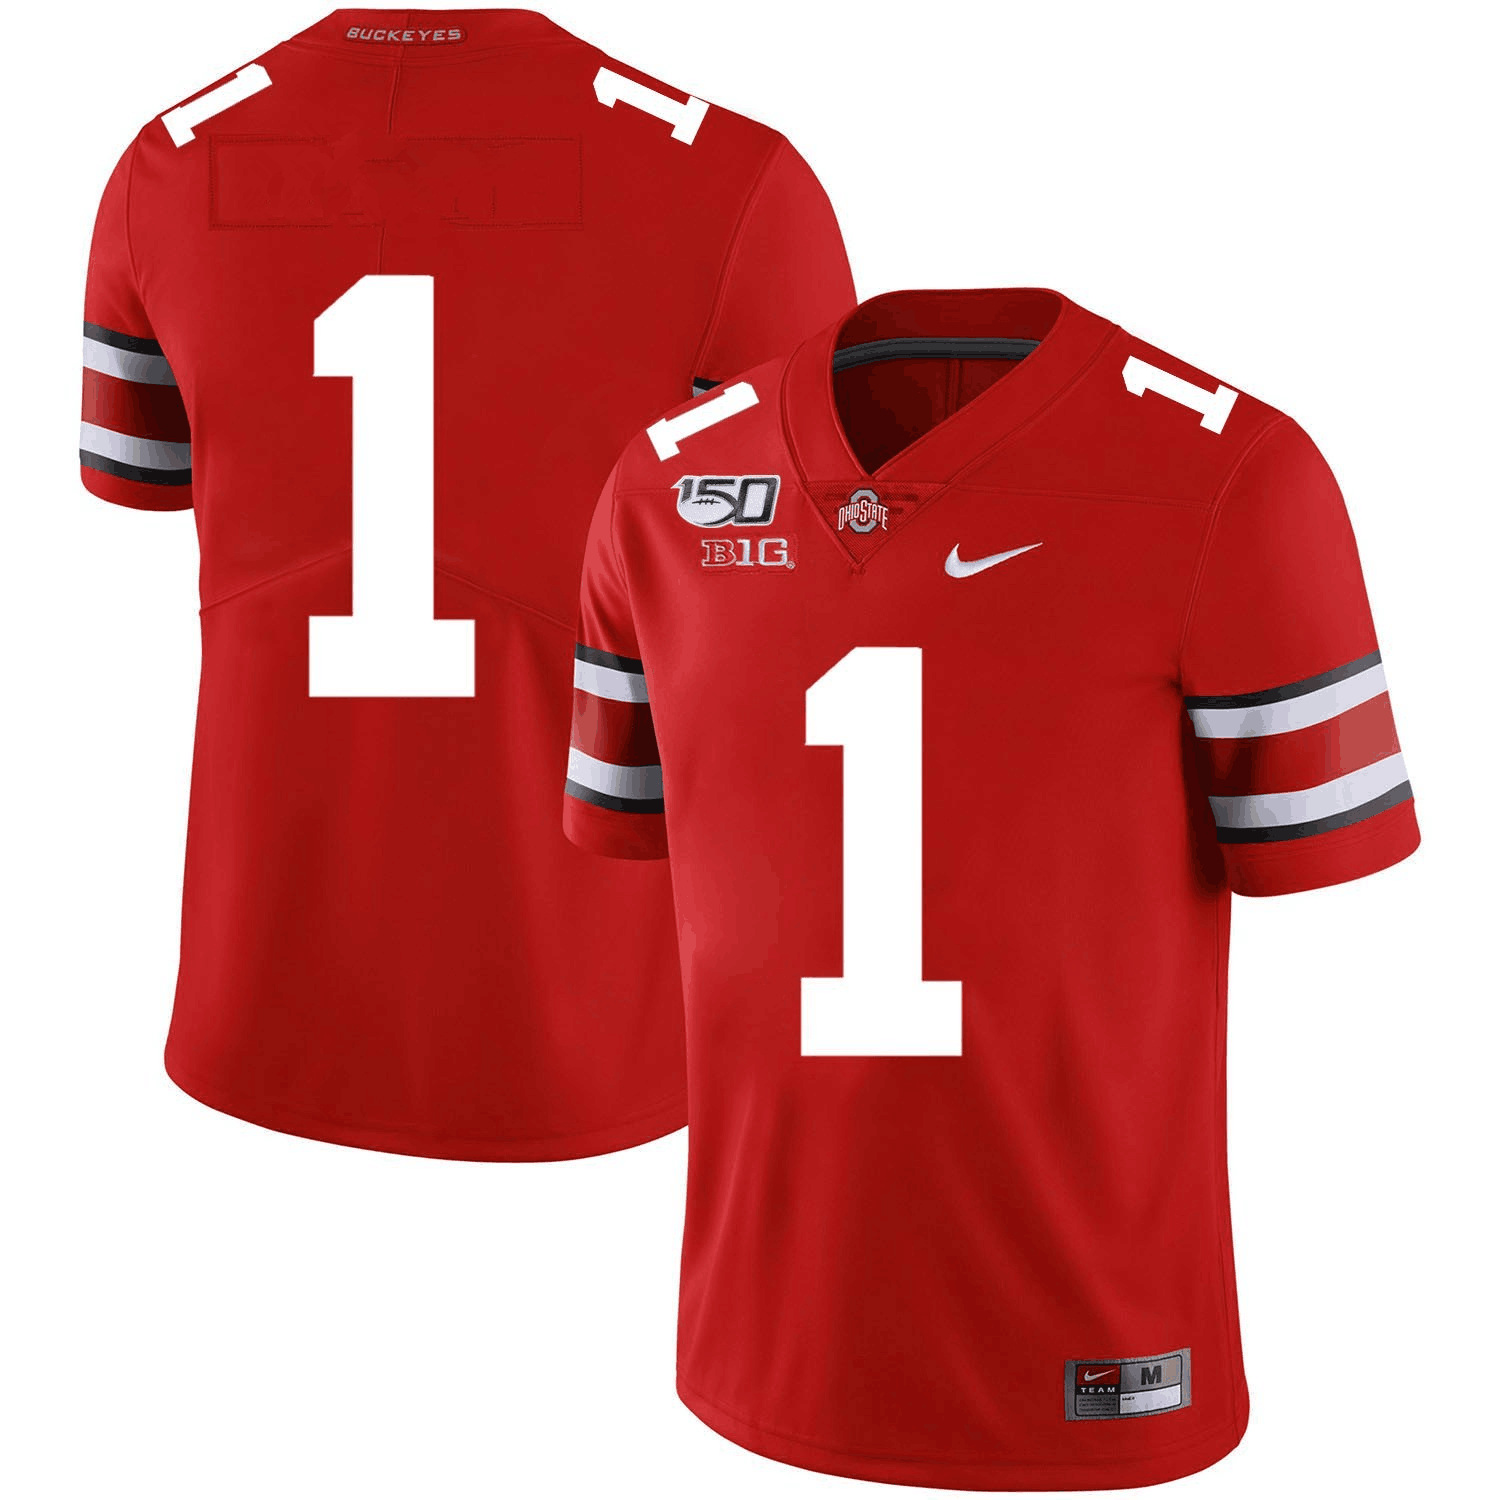 Men's Ohio State Buckeyes #1 2019 Red 150th Season College Stitched NCAA Jersey